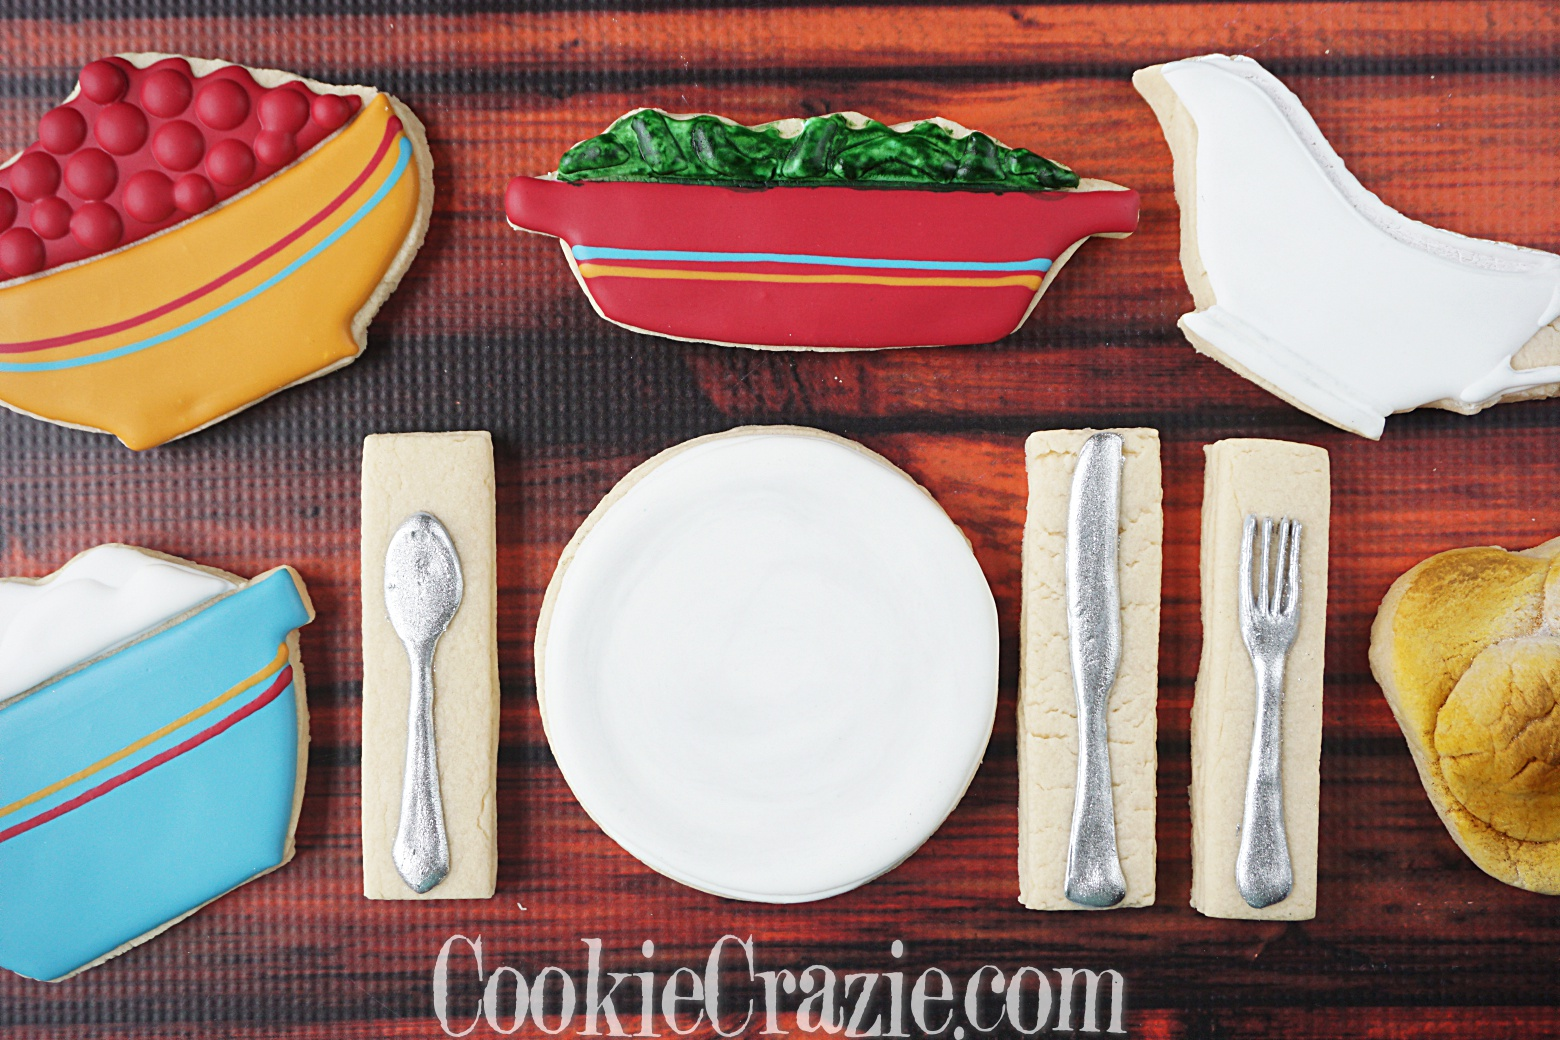 Dinner Plate Decorated Sugar Cookie YouTube video  HERE